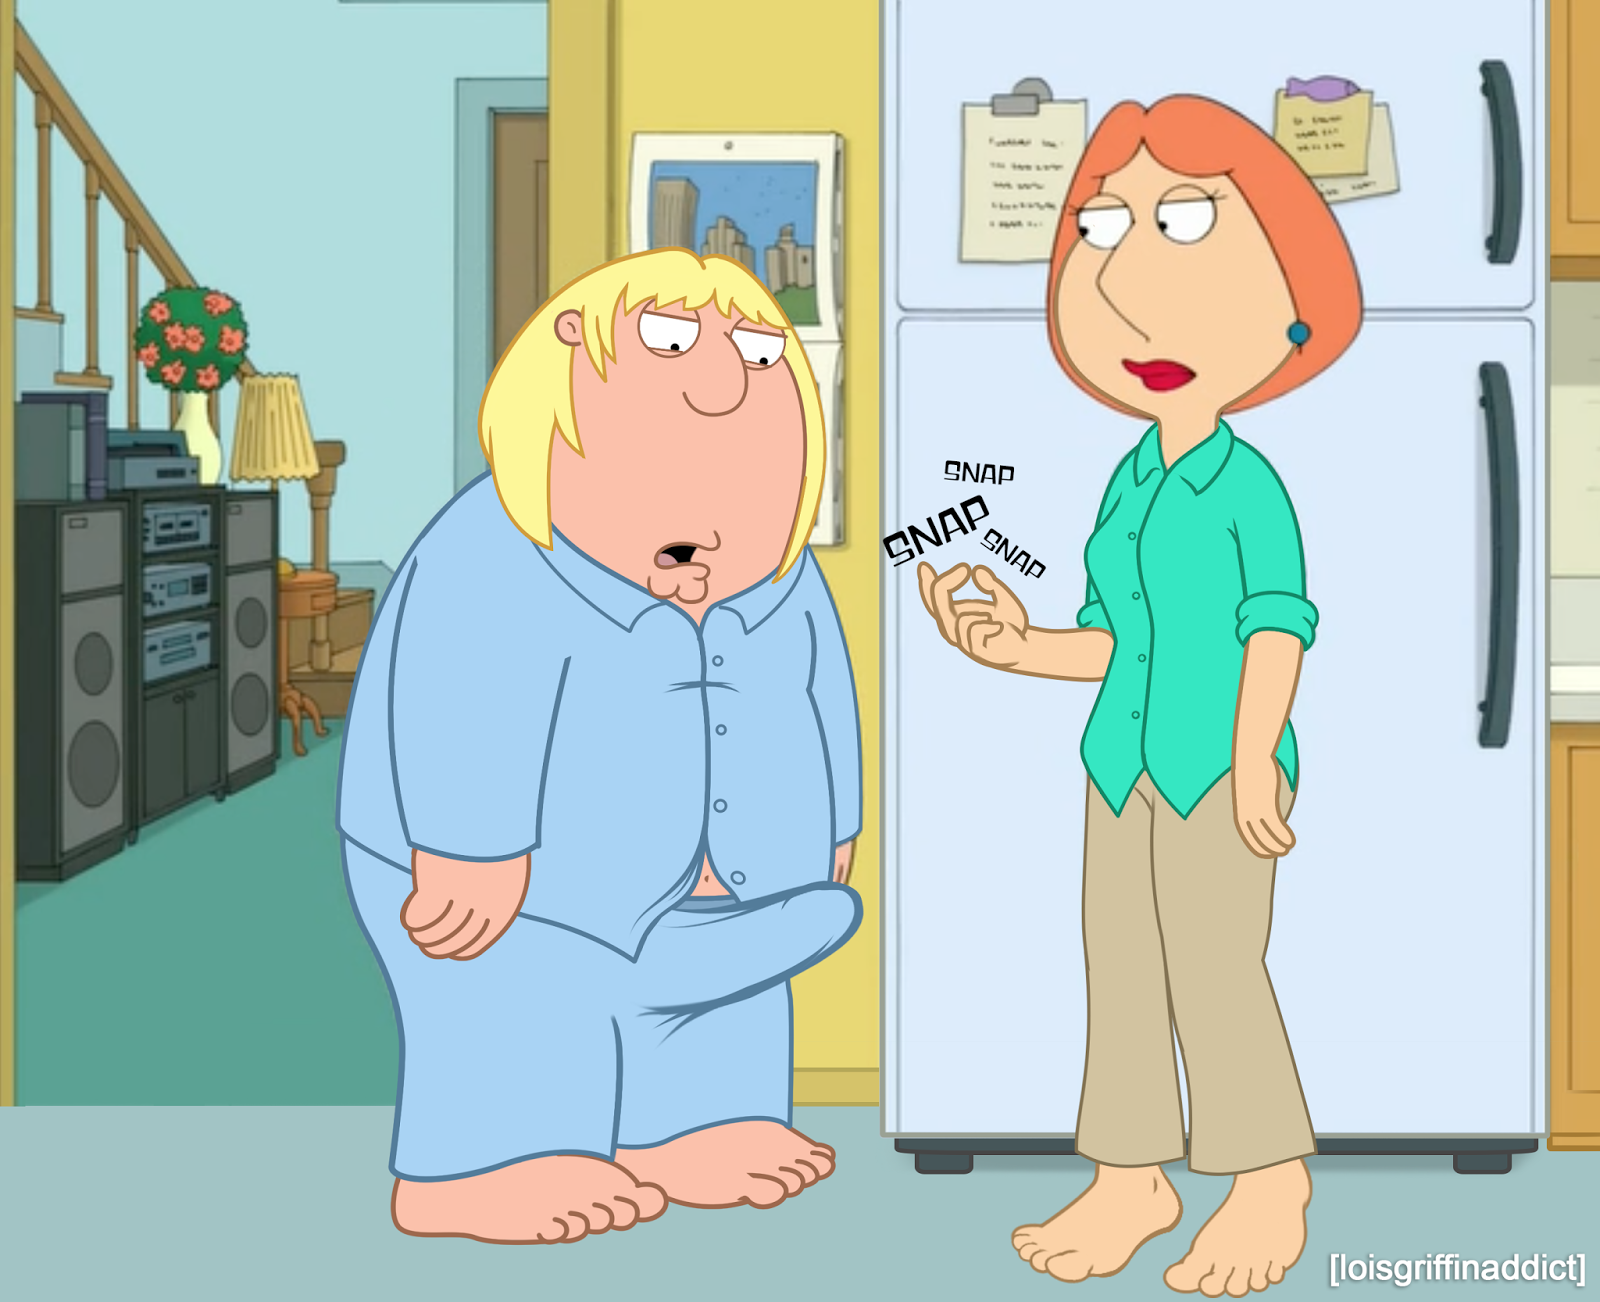 lois griffin feet free porn pictures